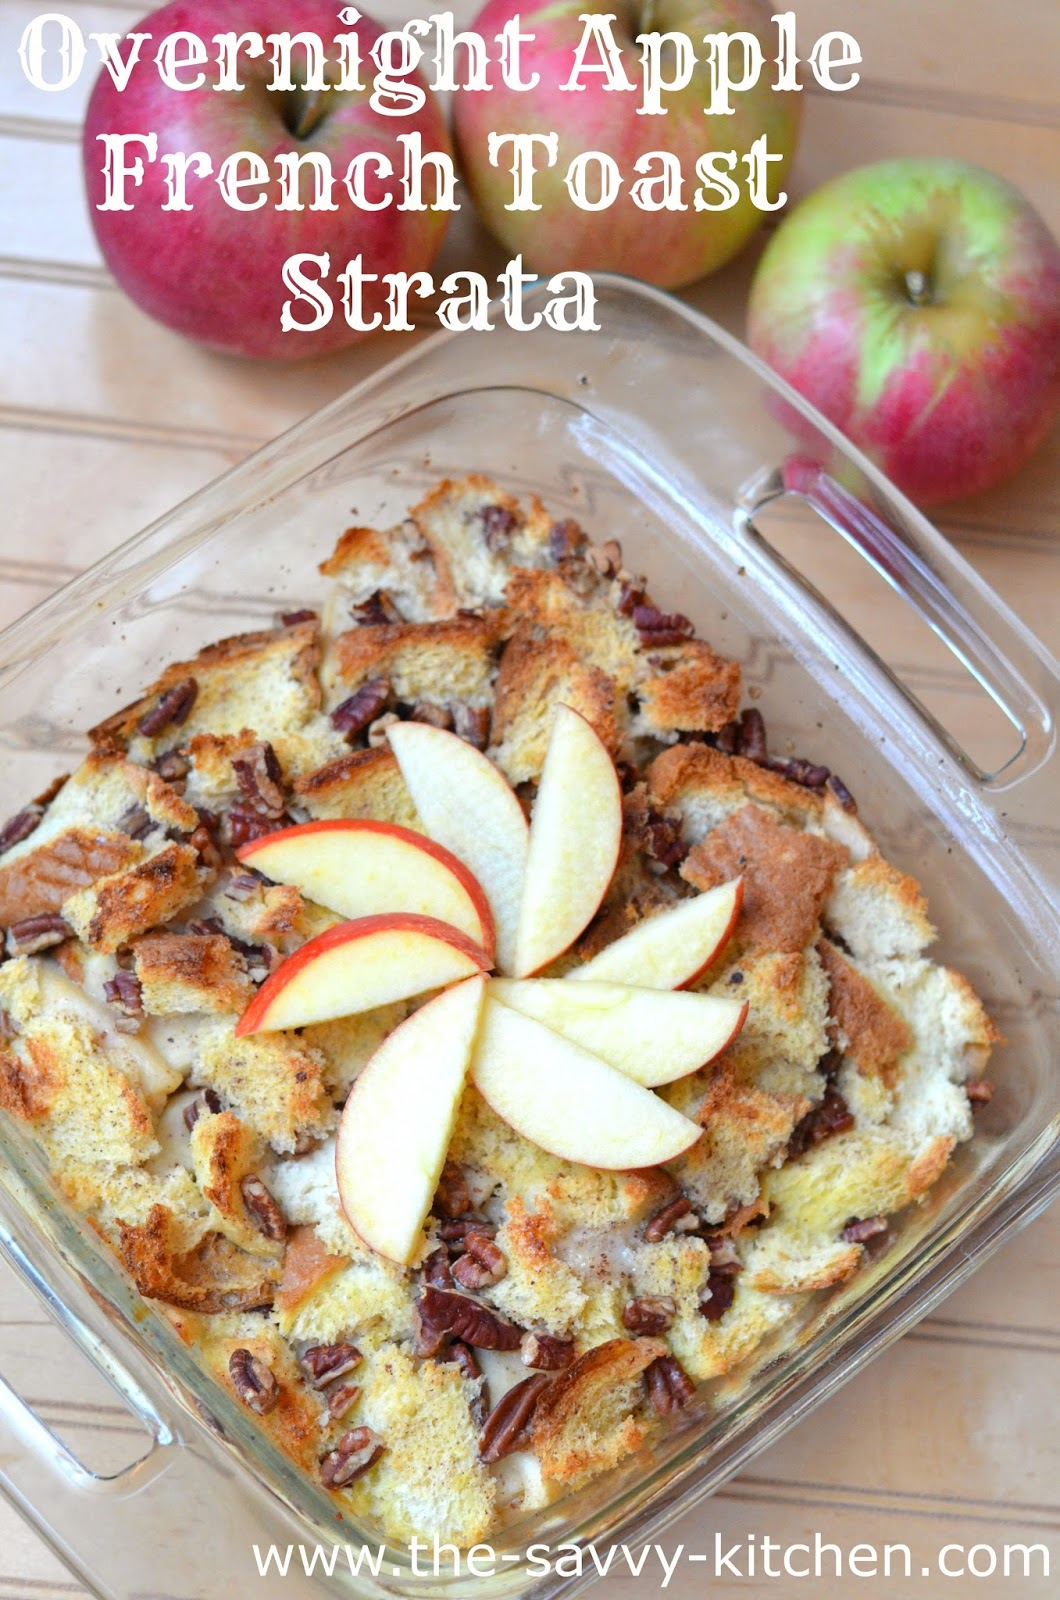 The Savvy Kitchen Overnight Apple French Toast Strata